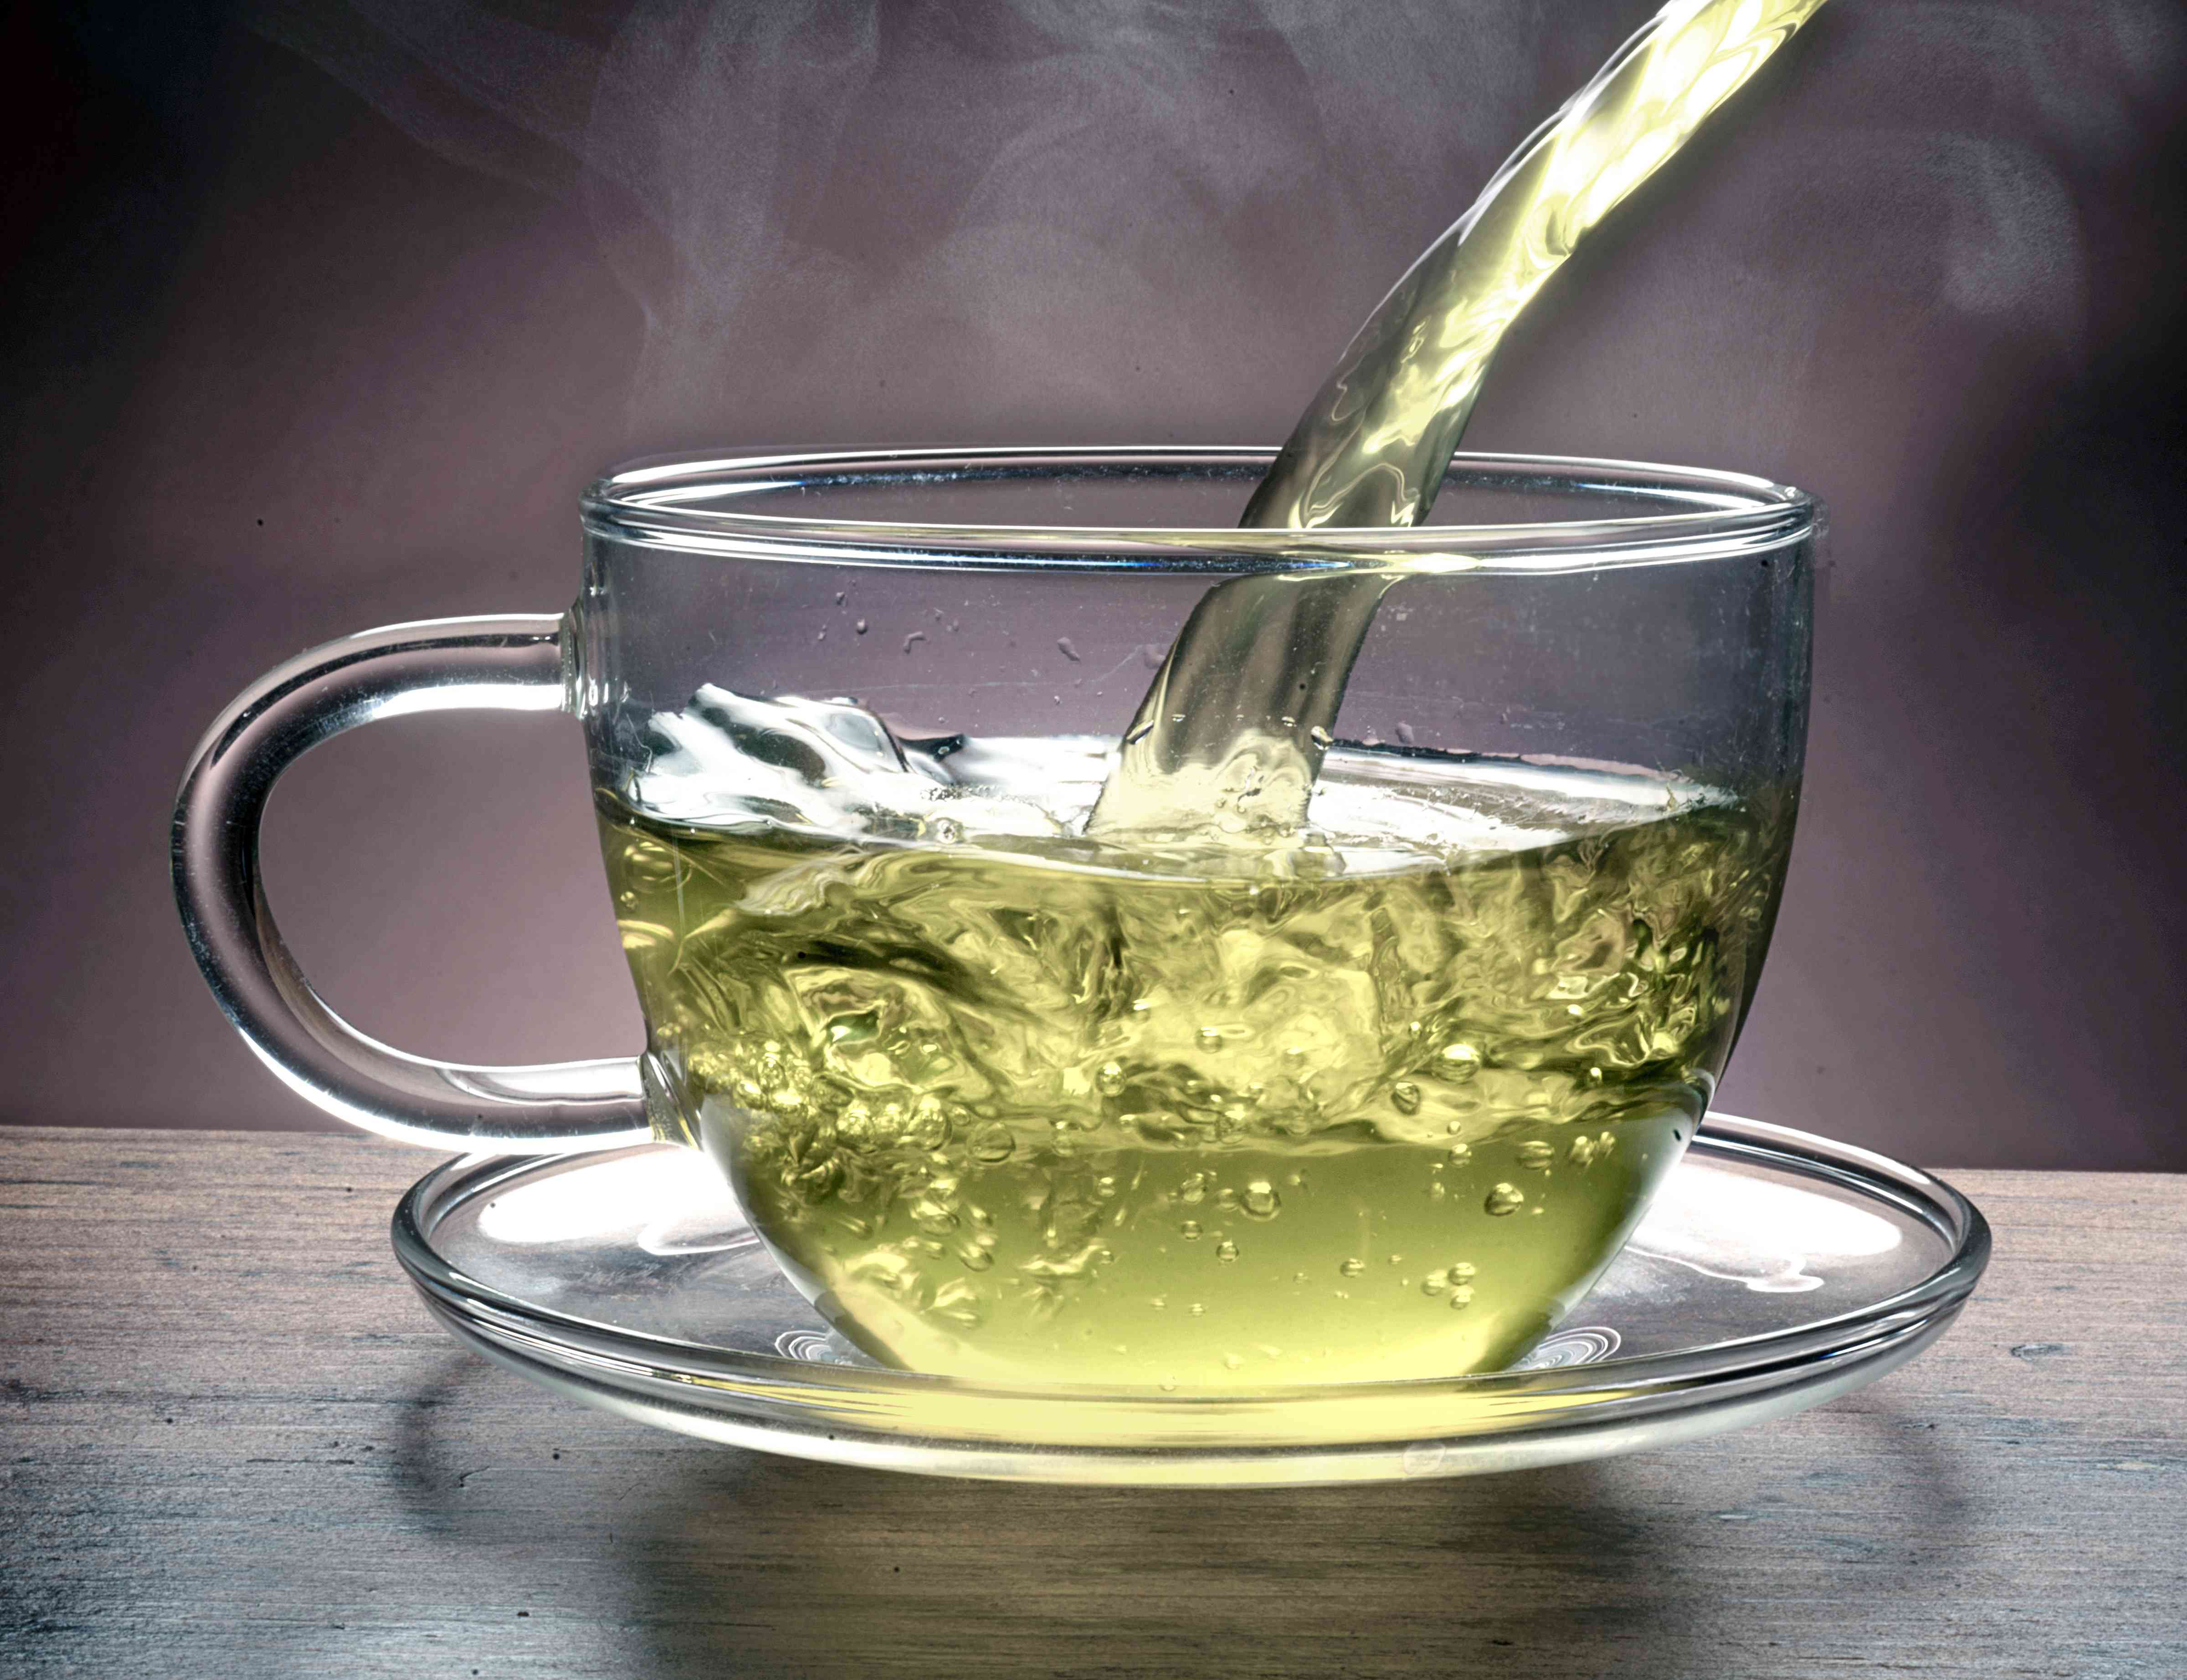 pouring hot herbal tea